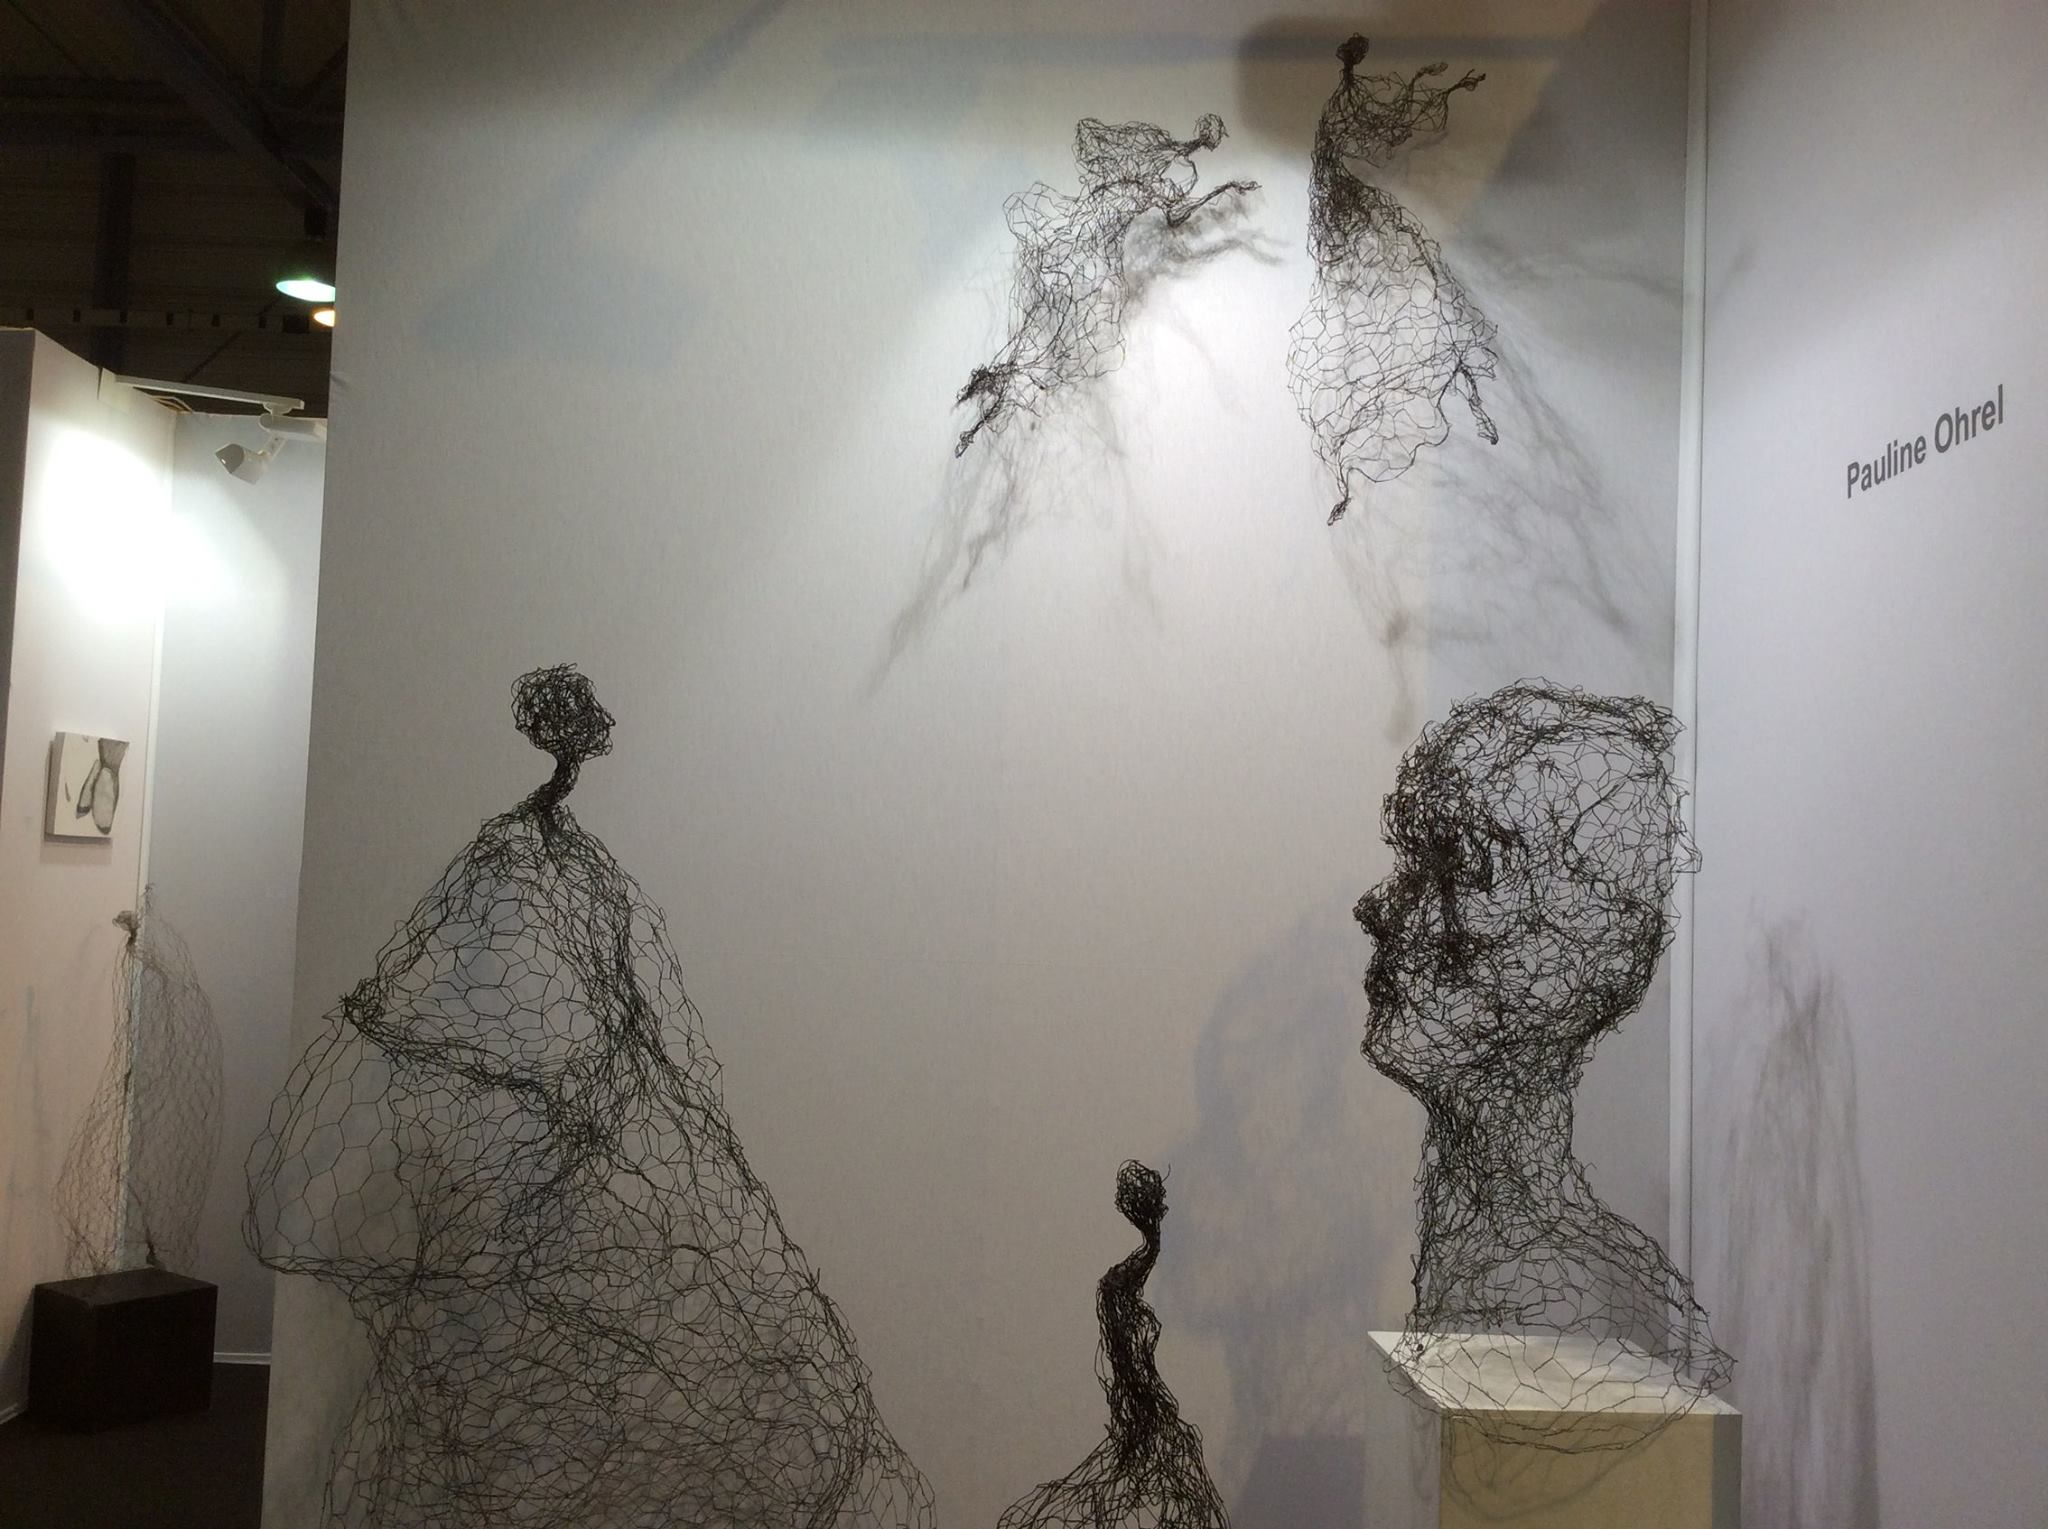 Pauline Ohrel Sculptor – wire sculptures